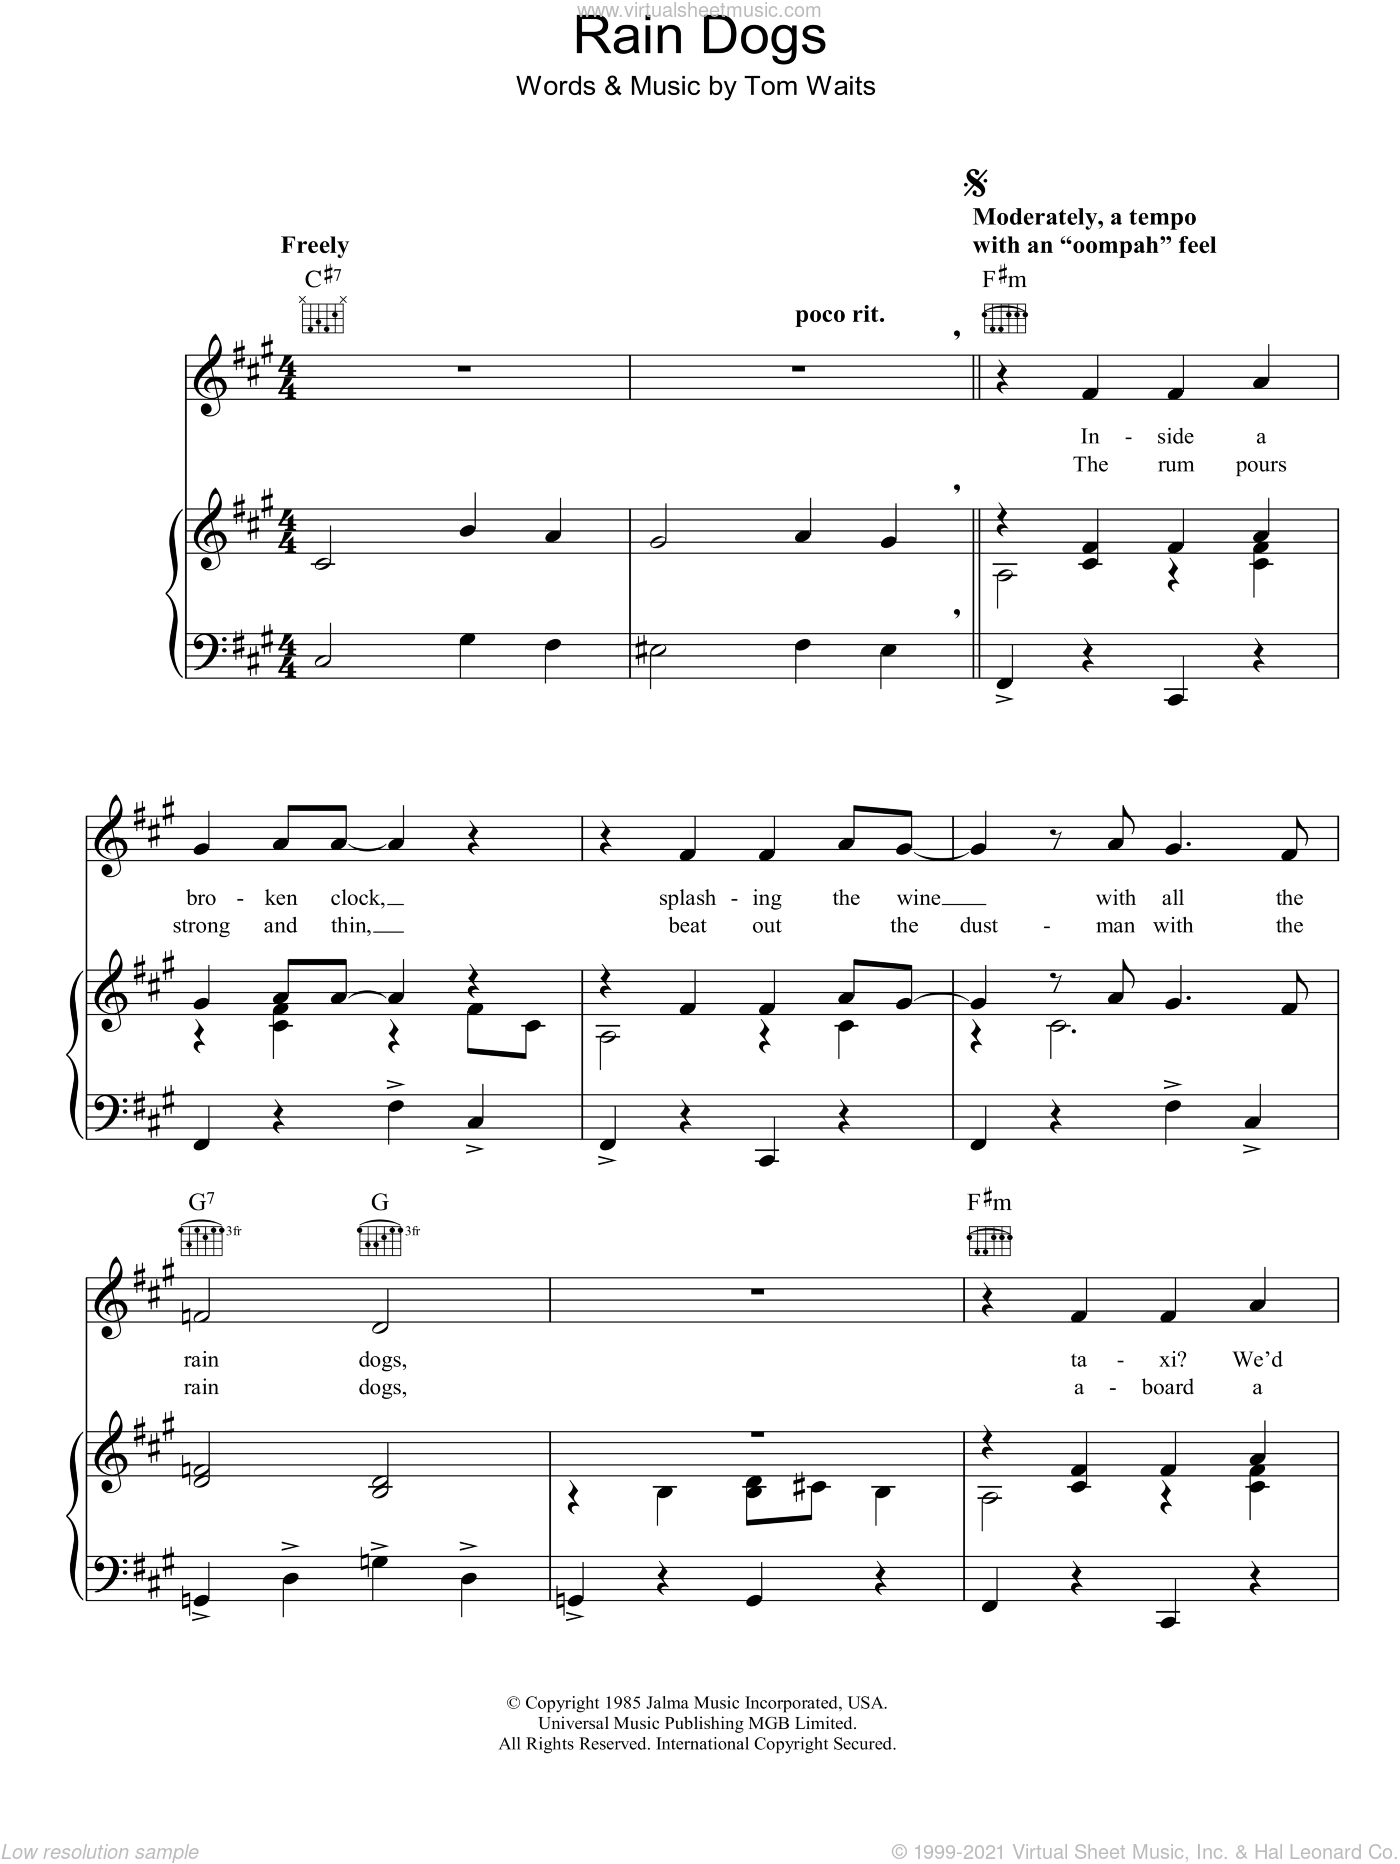 Rain Dogs sheet music for voice, piano or guitar by Tom Waits